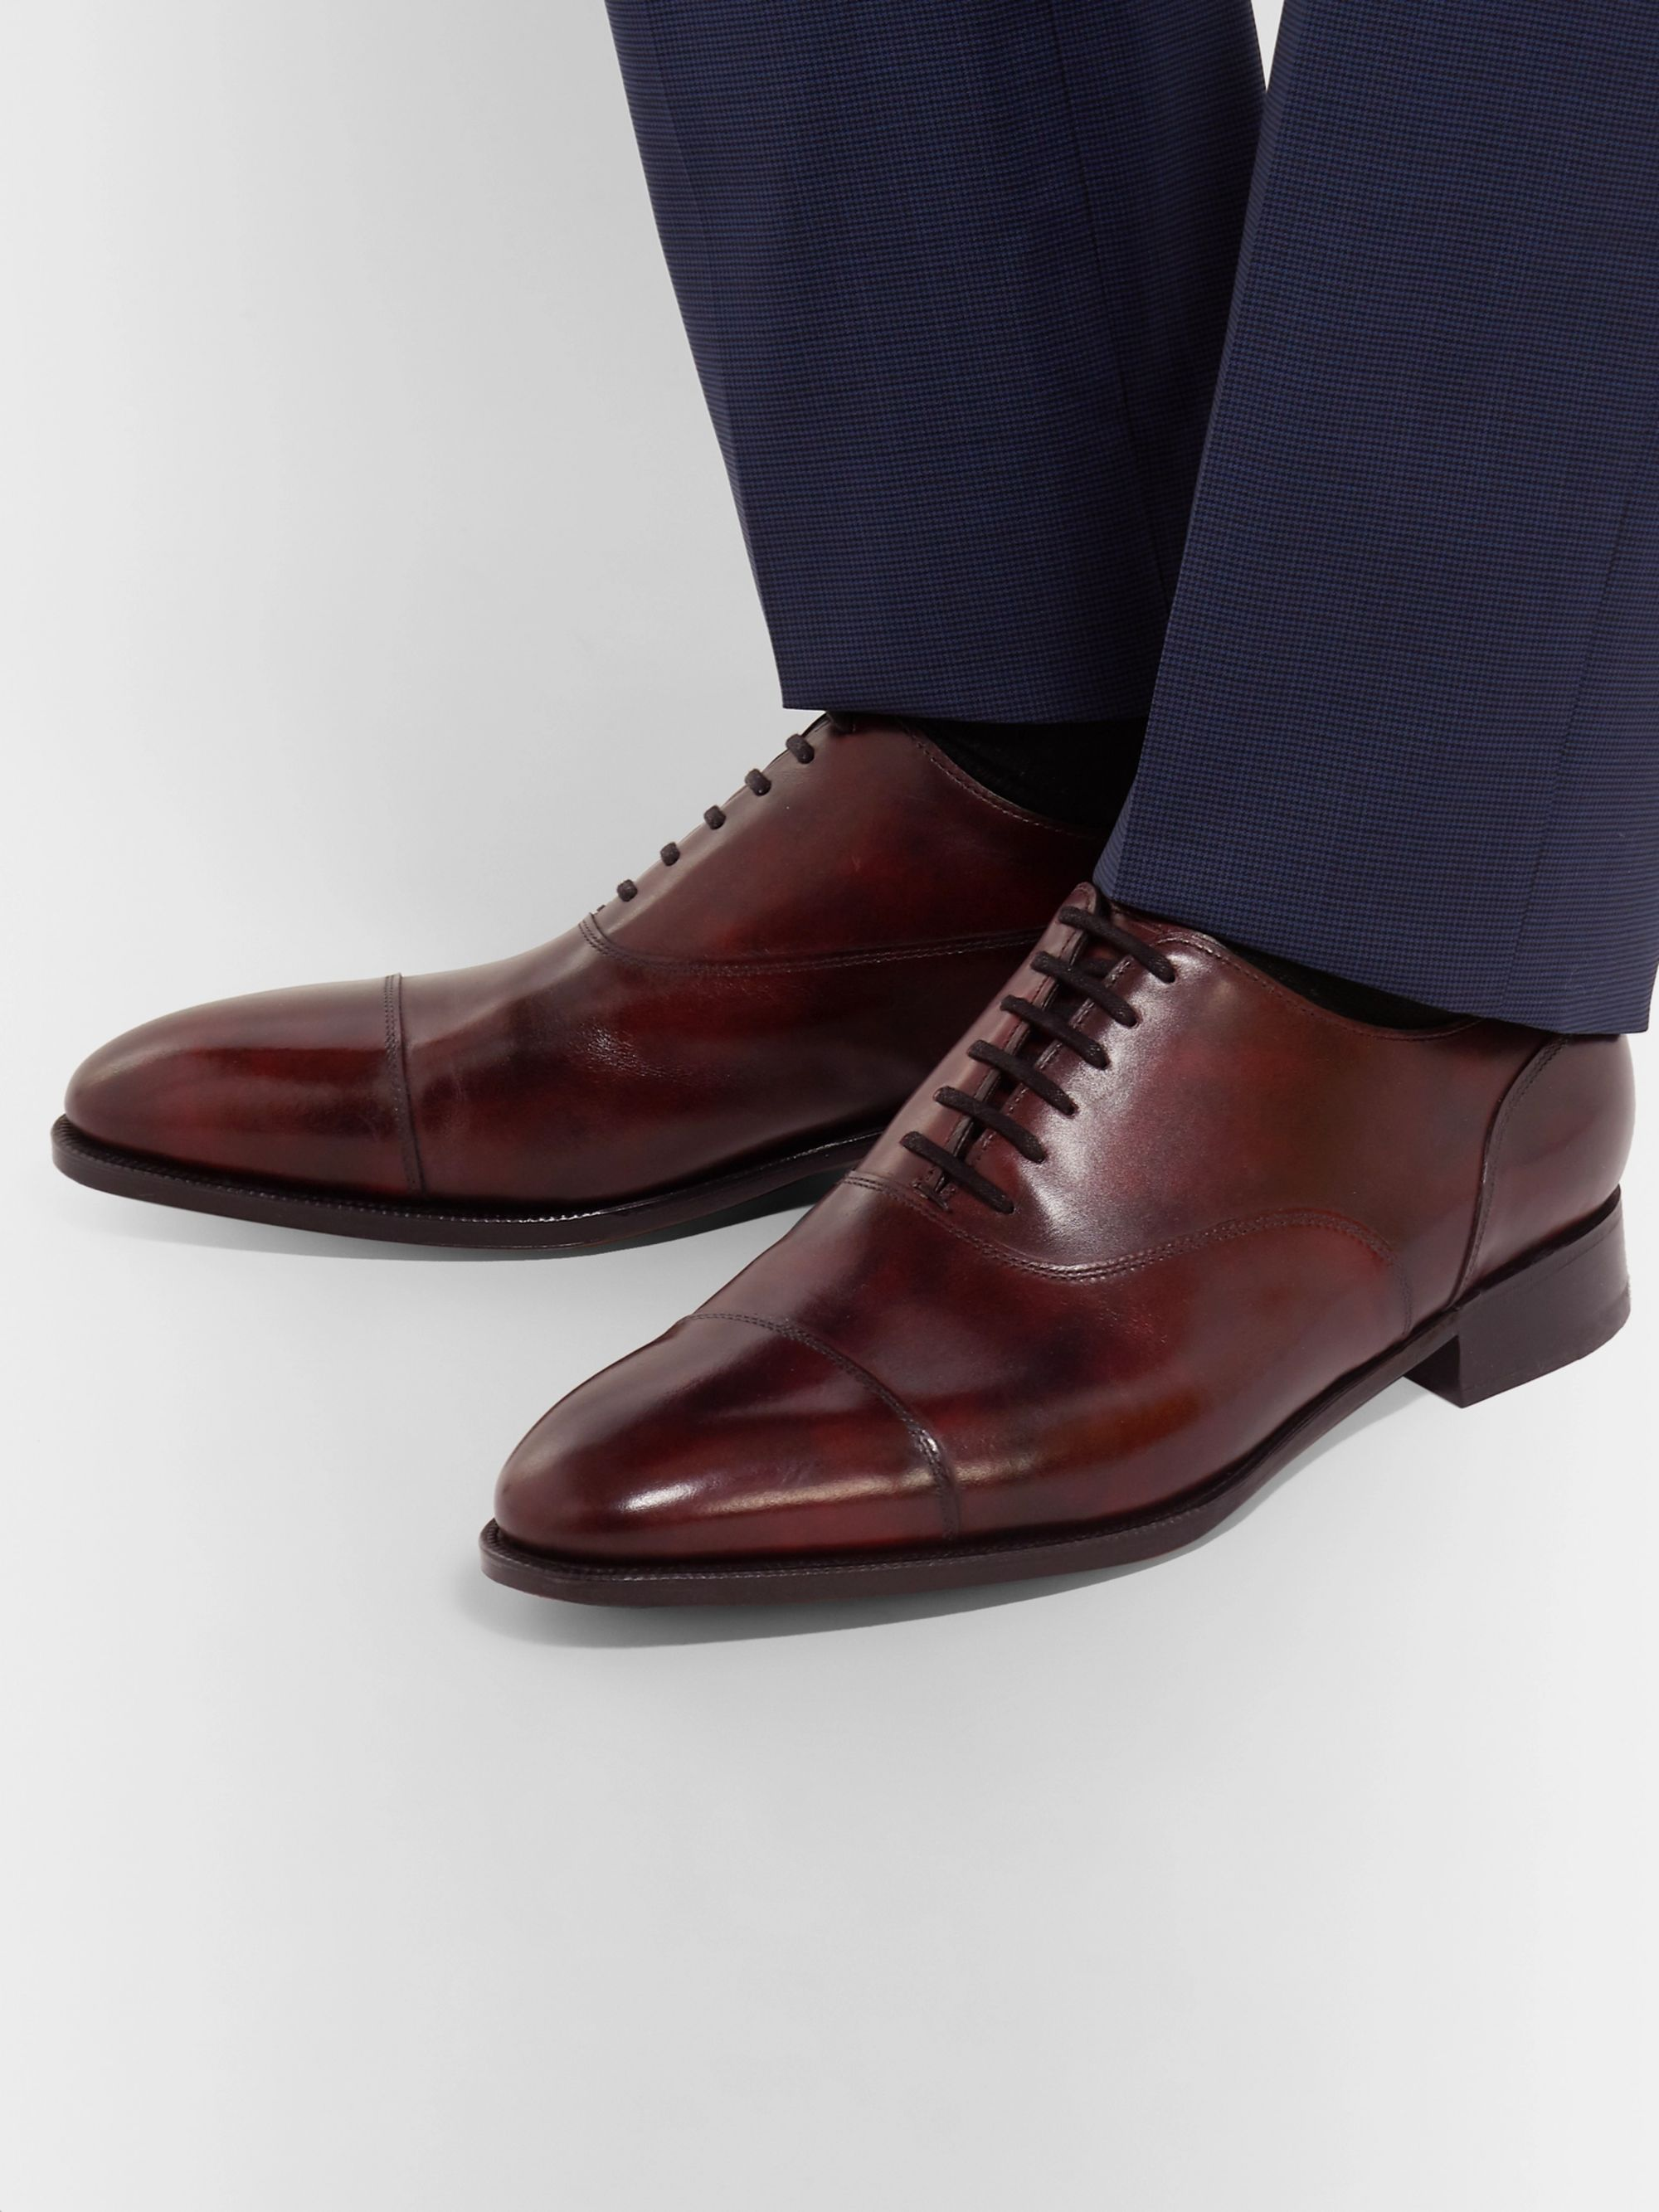 John Lobb Alford Museum Burnished-Leather Cap-Toe Oxford Shoes